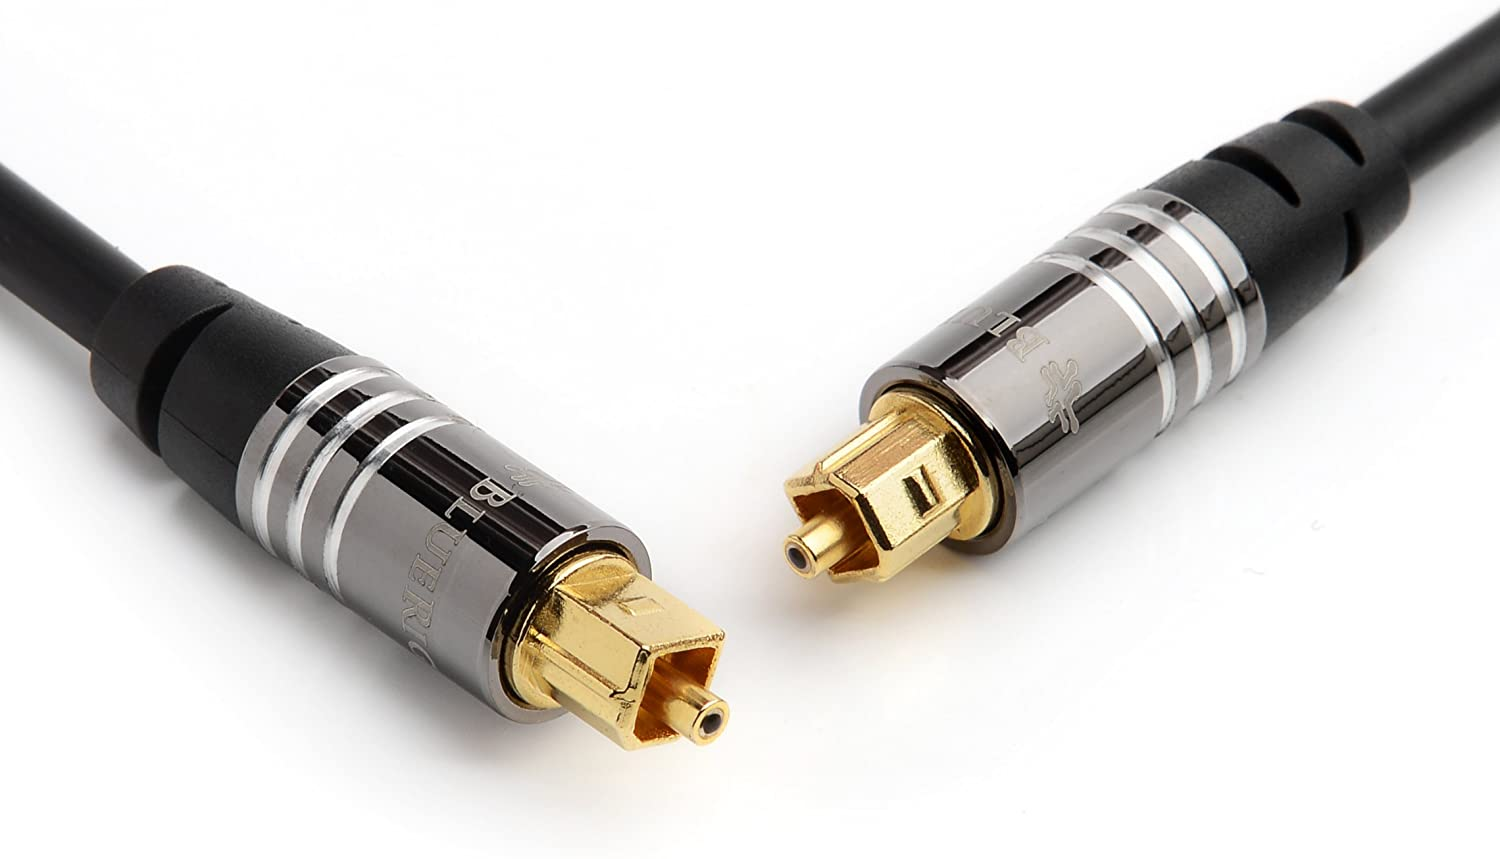 BlueRigger Premium Digital Optical Audio Toslink Cable - with 24K Gold Plated Connectors (for Home Theatre, Xbox, Playstation etc.) (3FT)